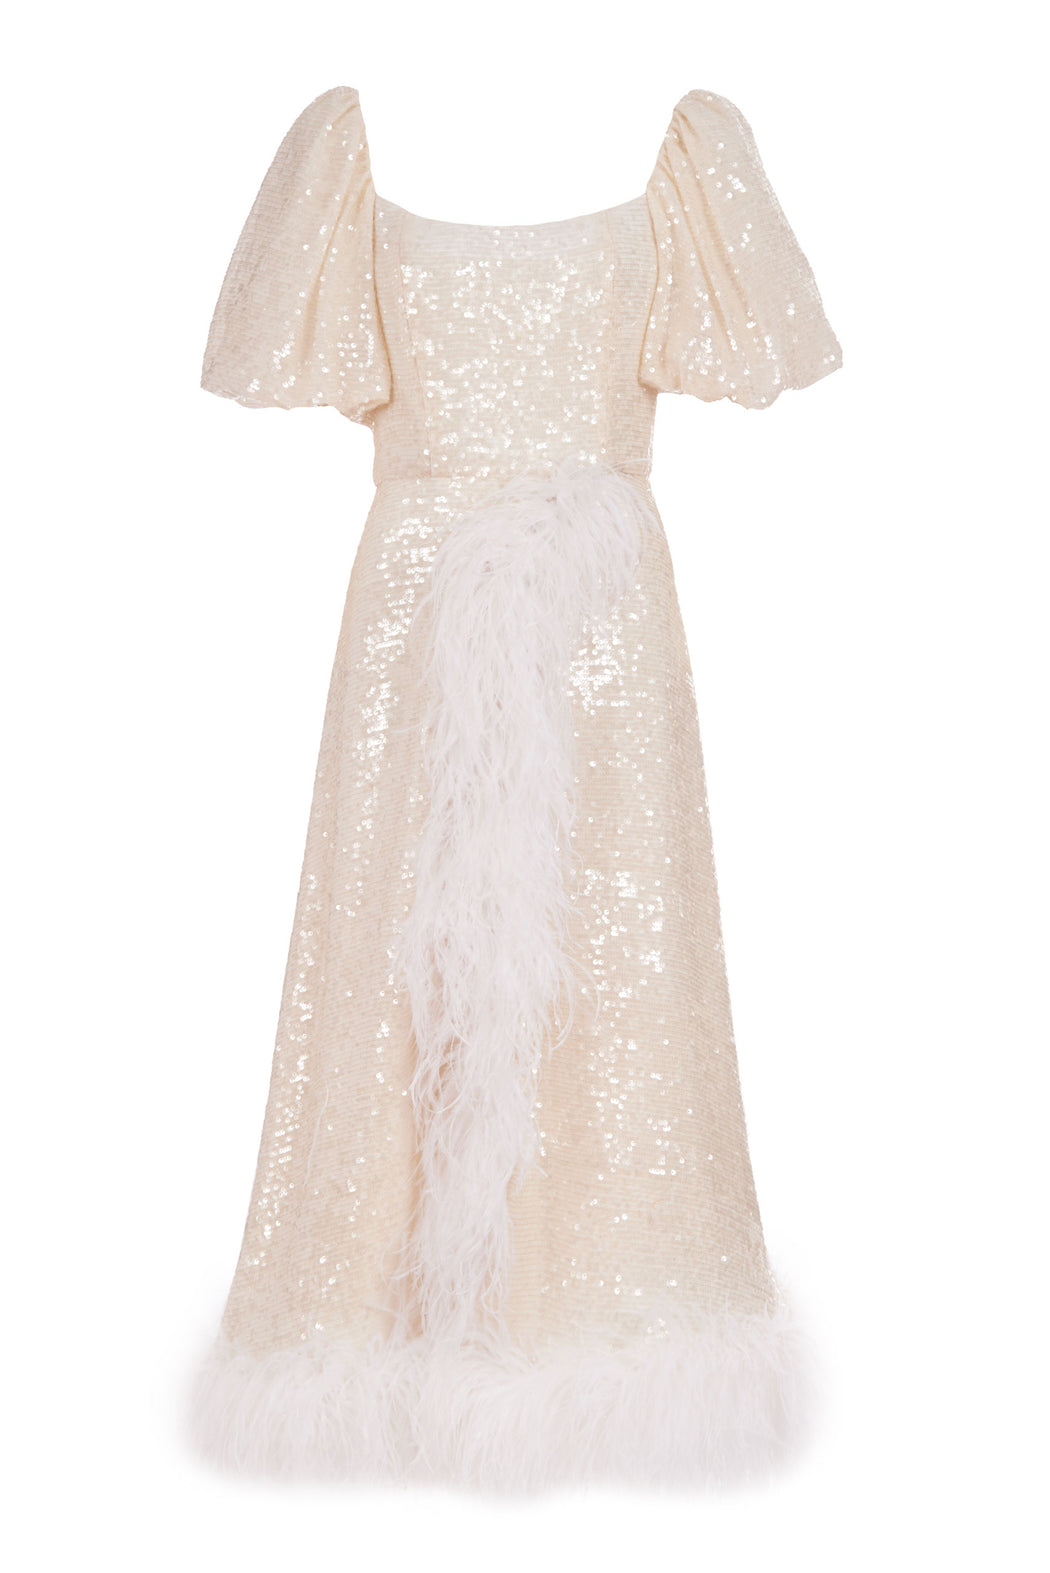 Jeanette Ivory Sequin Puff Sleeve Wrap Dress with Ostrich Feather Embellishment